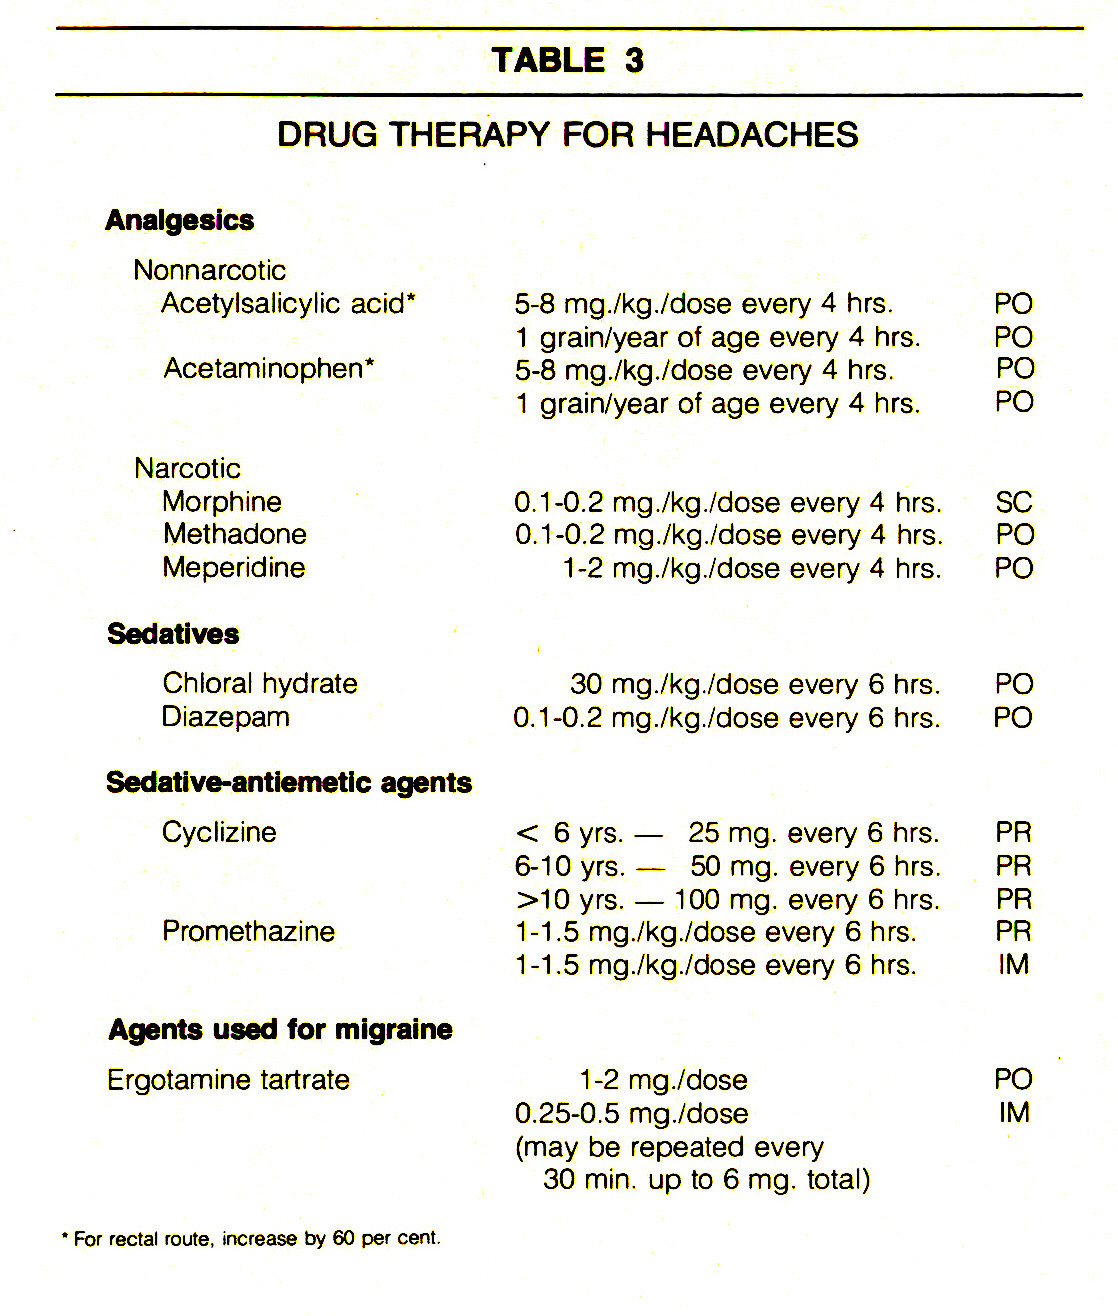 TABLE 3DRUG THERAPY FOR HEADACHES